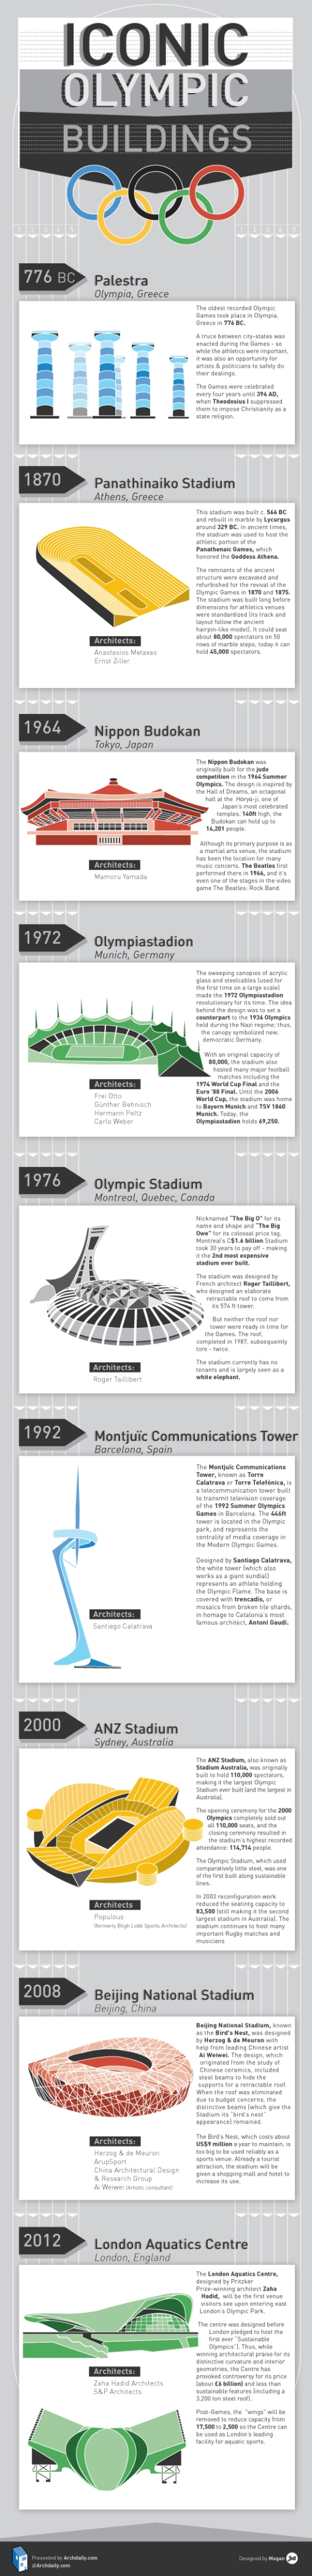 Infographic: Iconic Olympic Buildings   ArchDaily